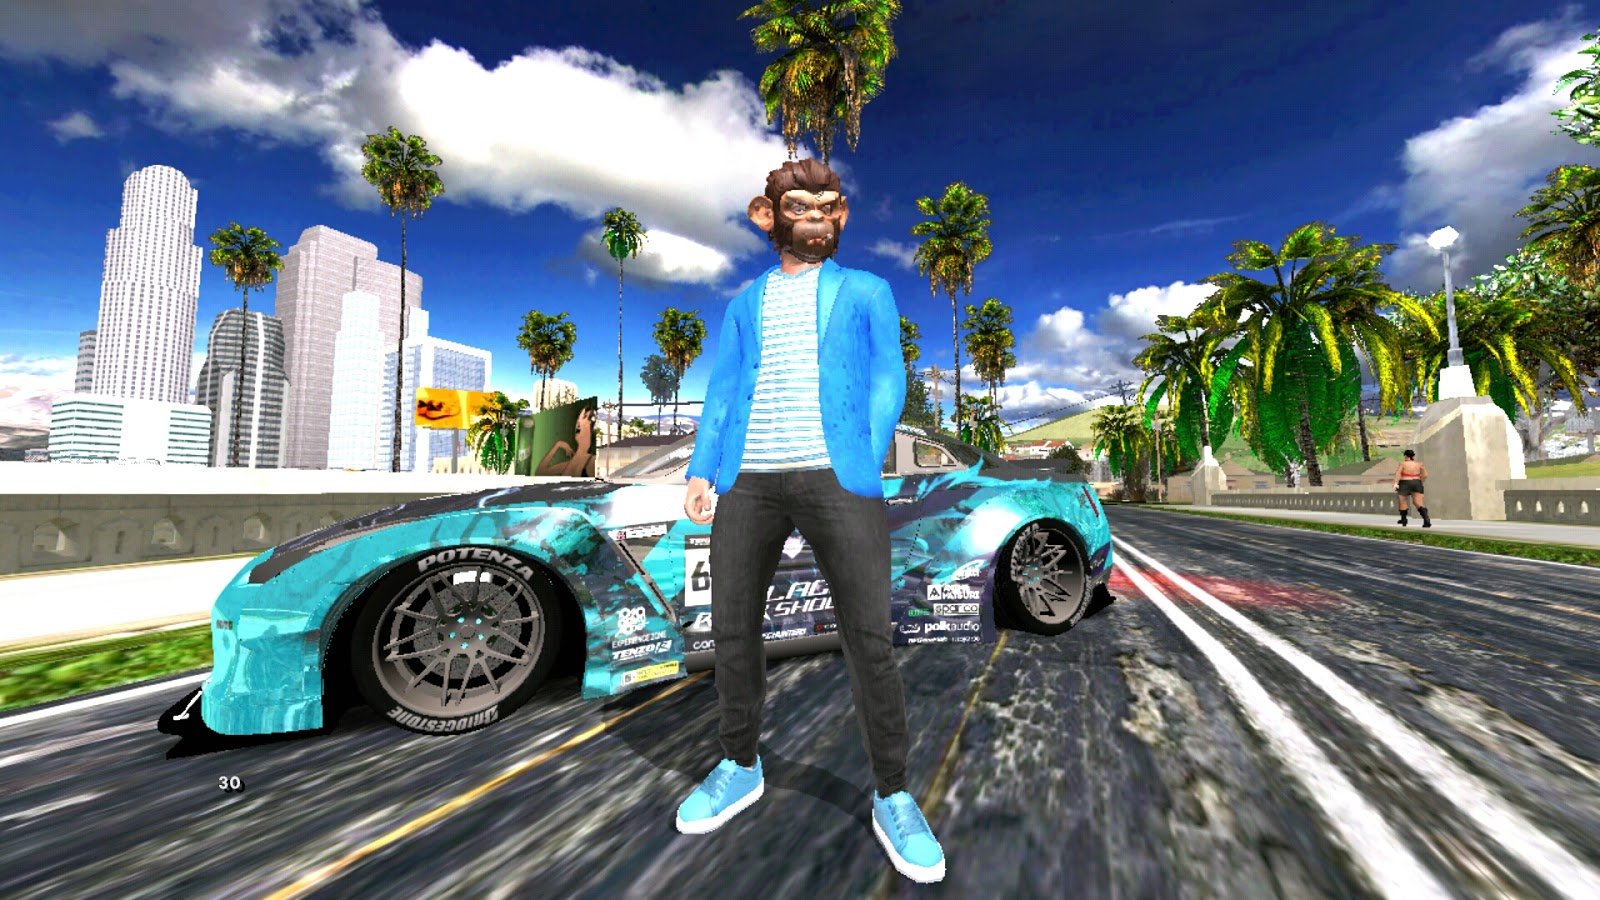 download gta lite indonesia size kecil by ilham_51